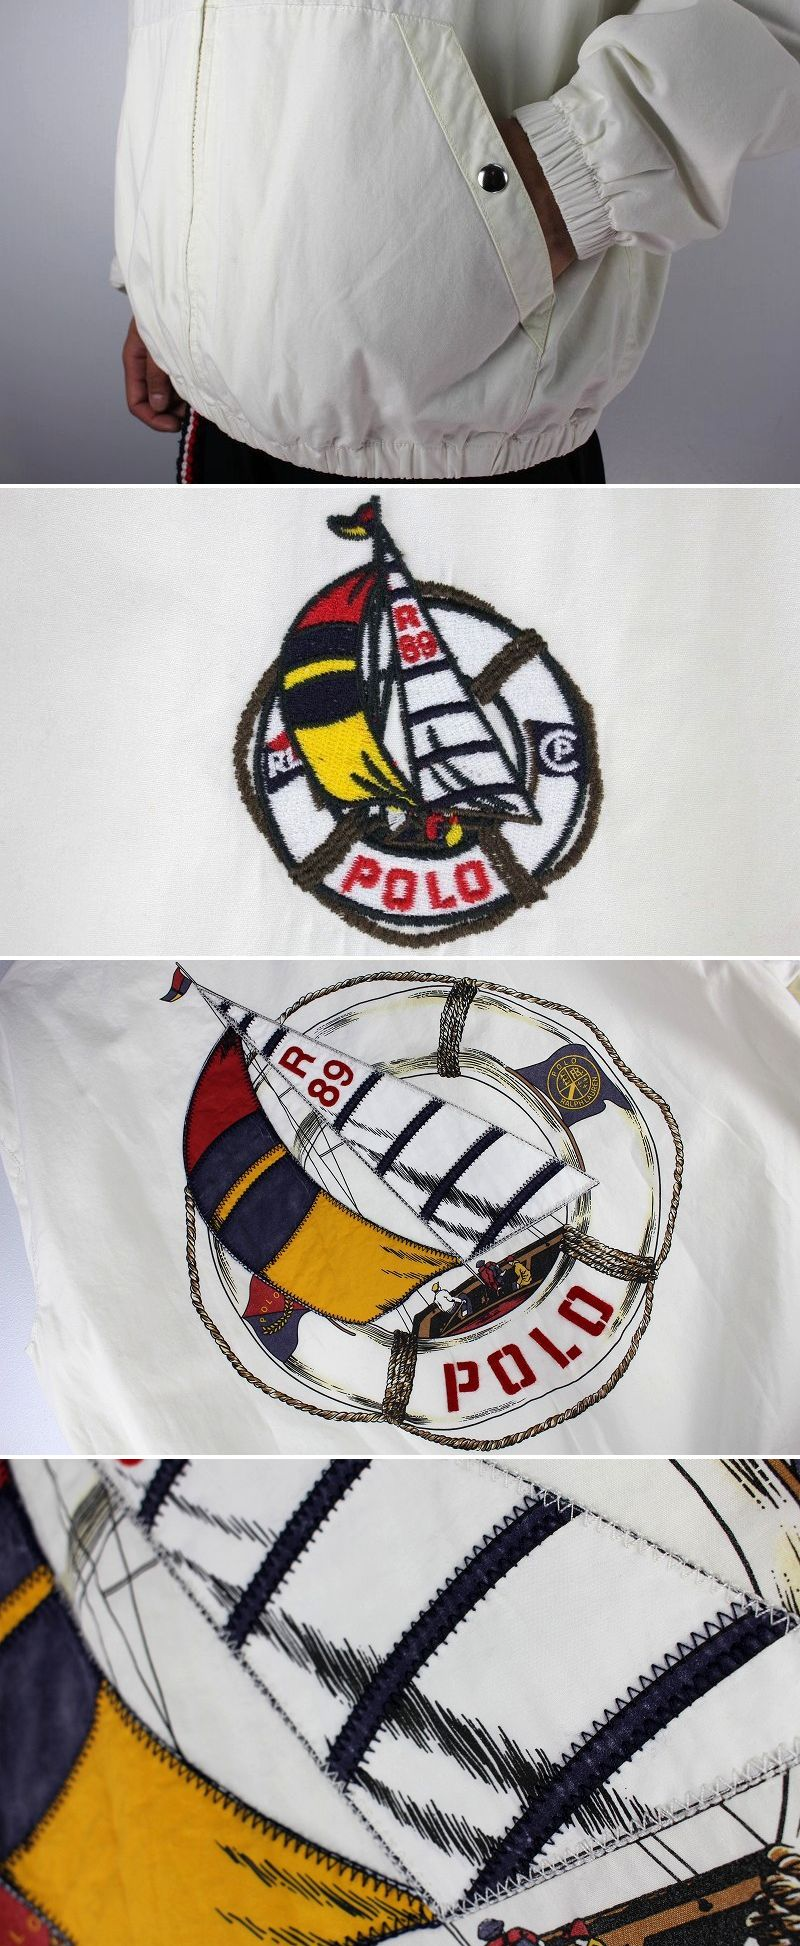 "POLO RALPH LAUREN / ""SAILING"" SWING TOP / white"